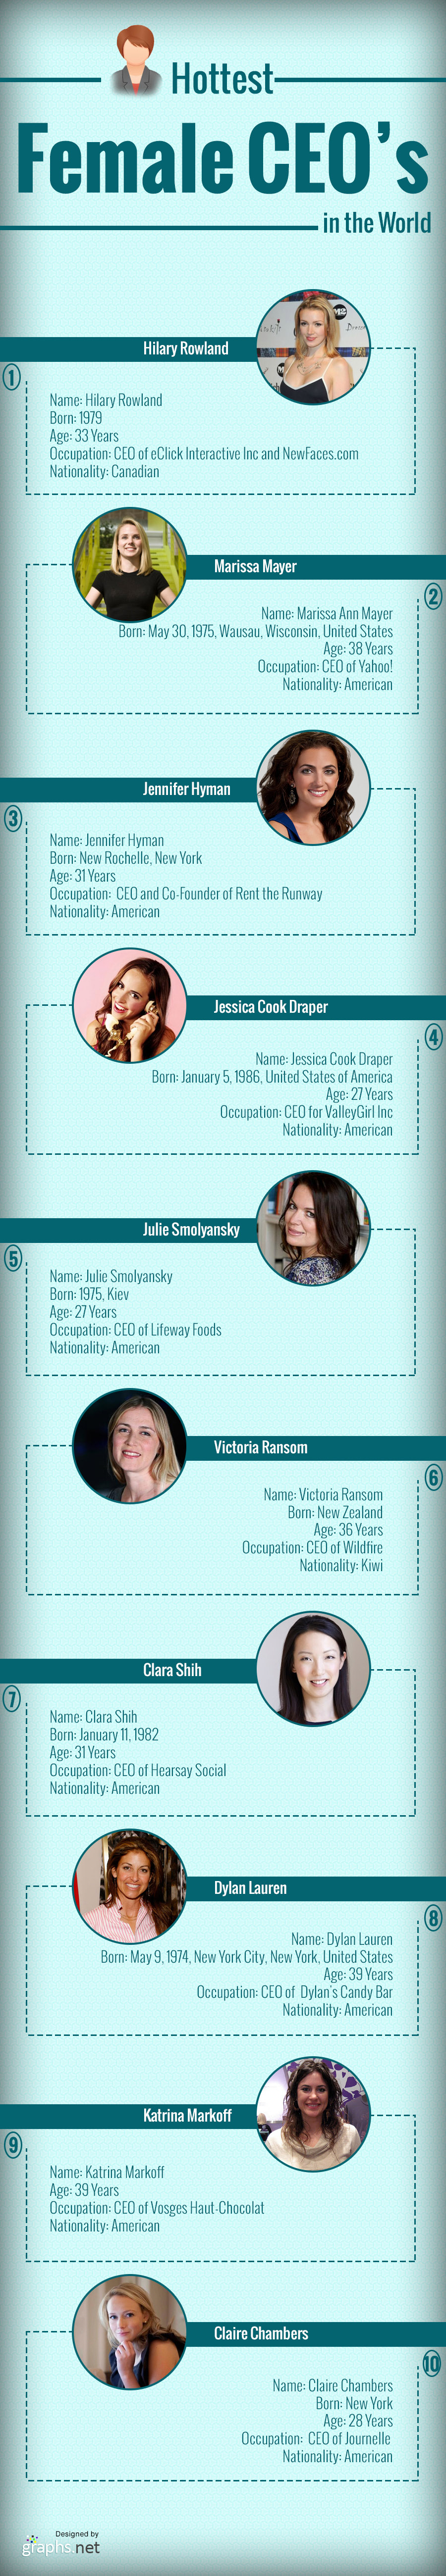 Hottest Female CEOs in the World - Infographic